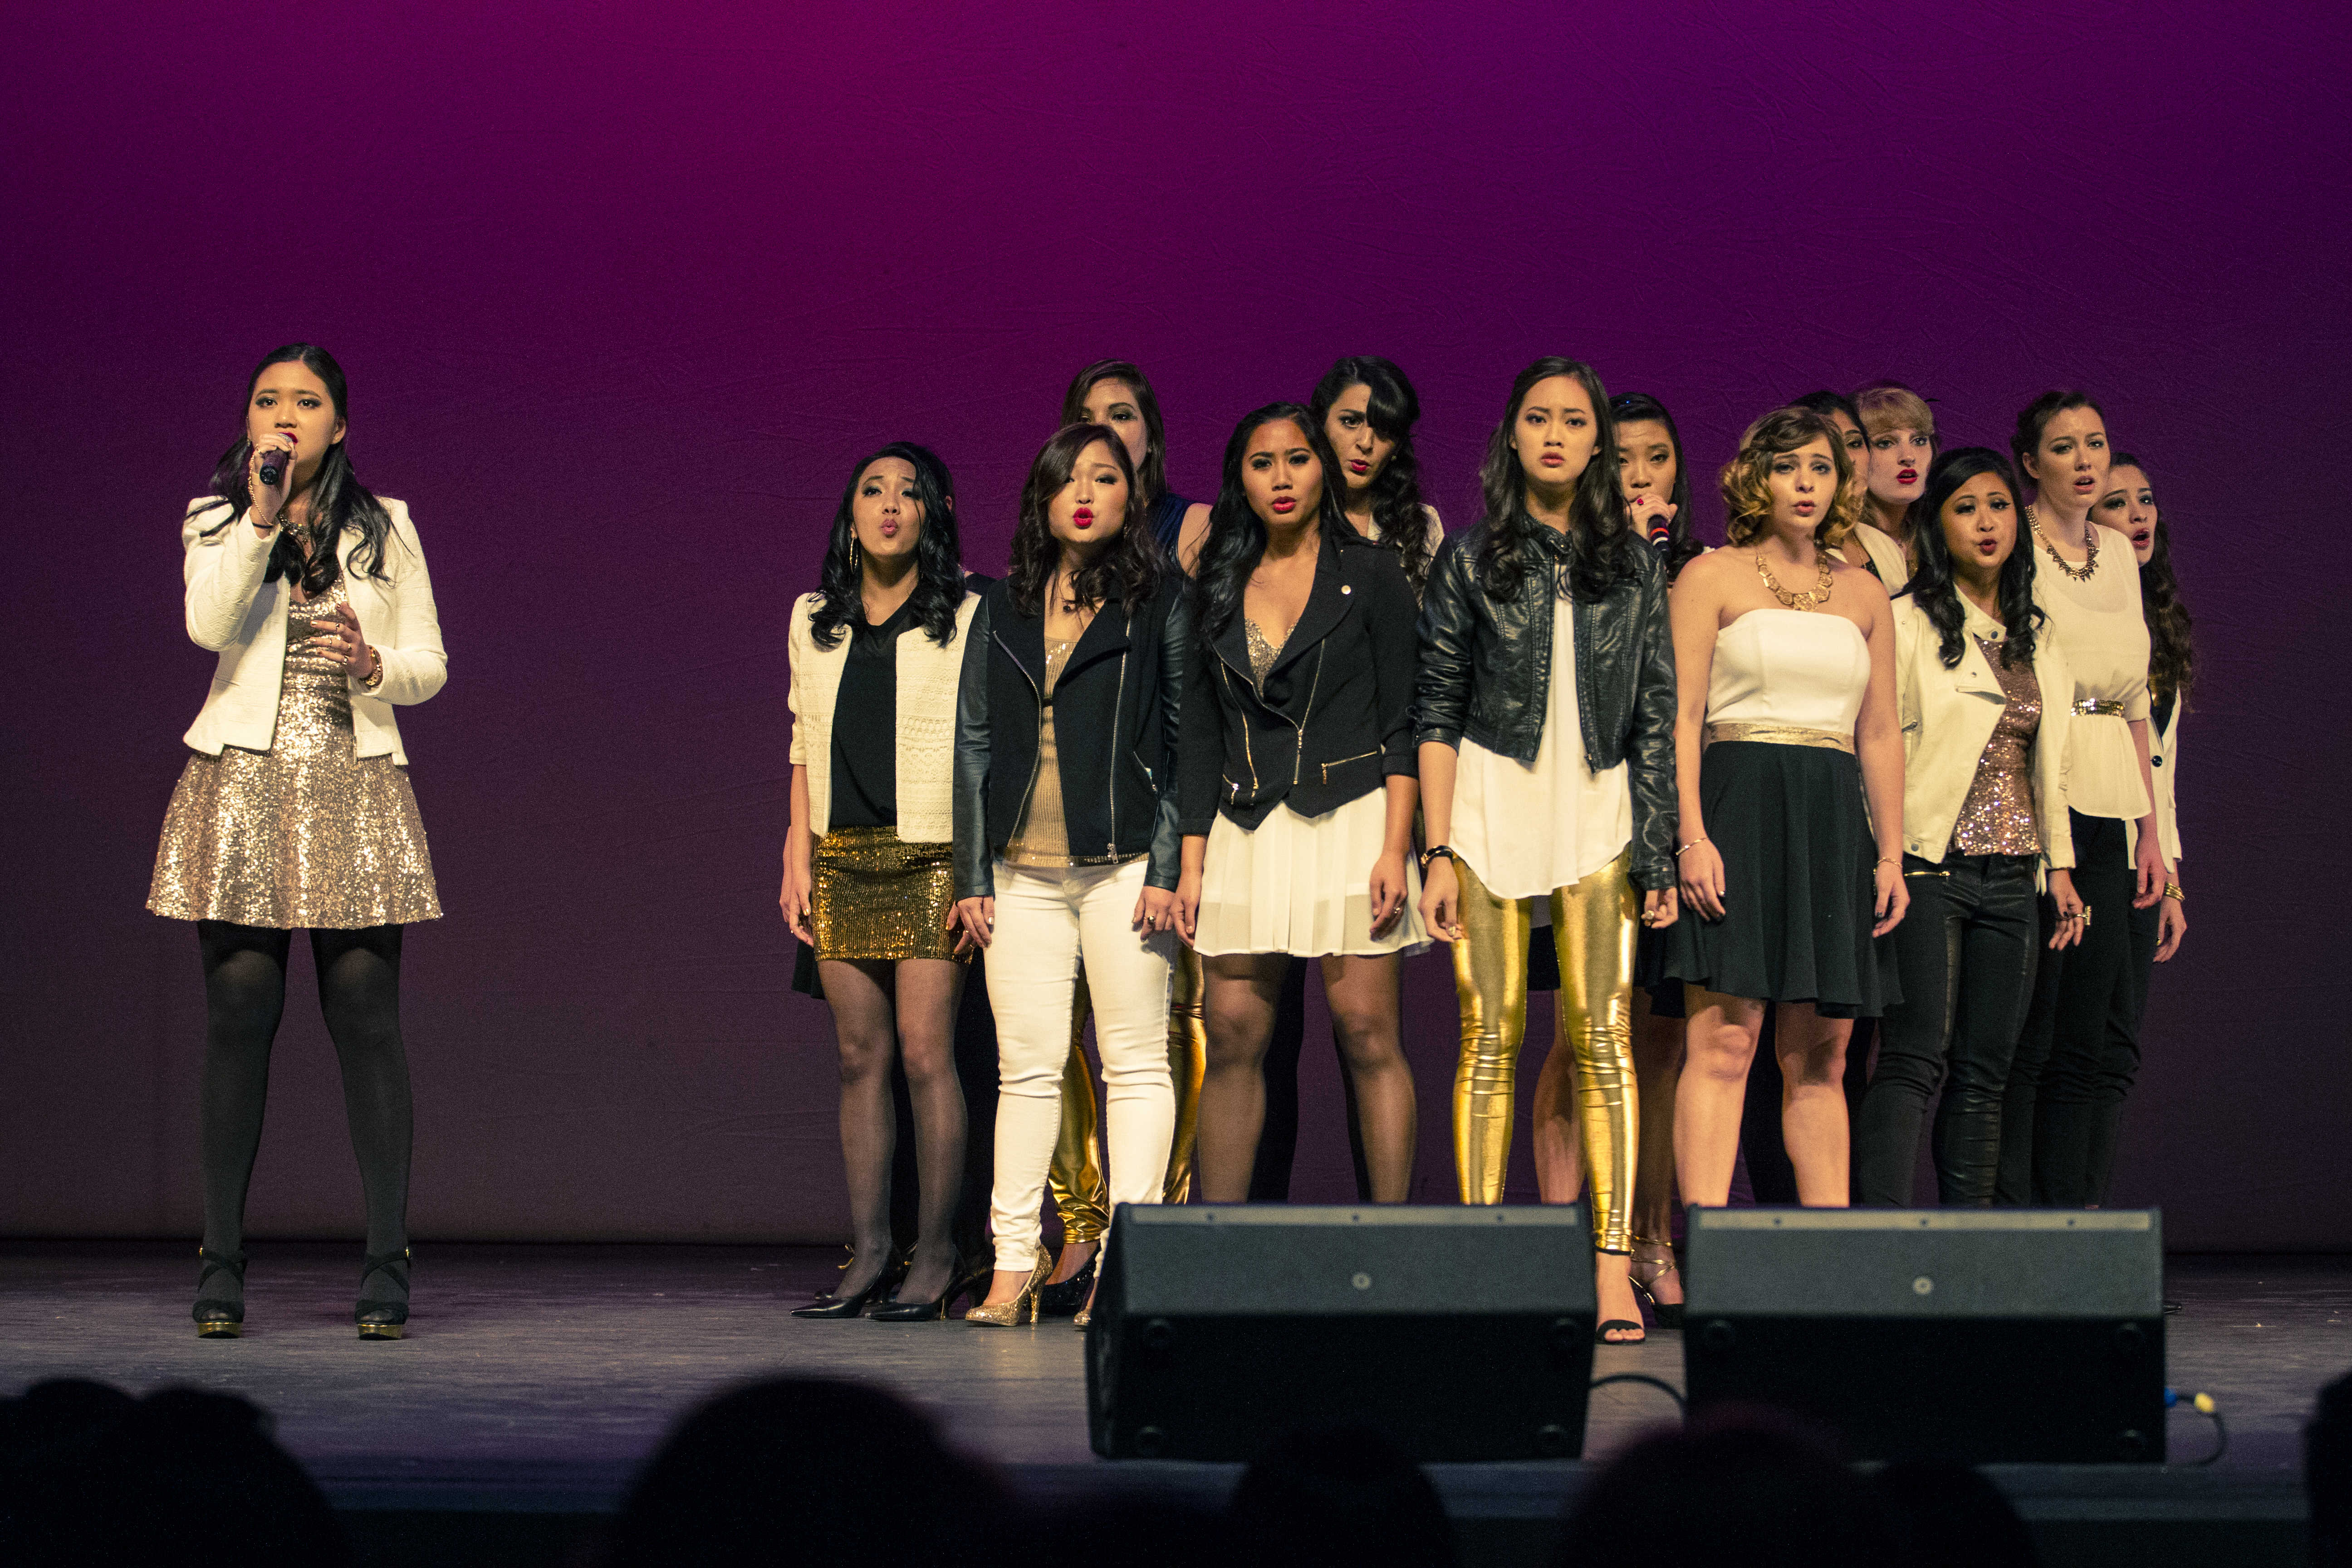 The Daughters of Triton (DOTs) peform at the 2014 ICCA Quarterfinals. Photo credit by Alwin Szeto.